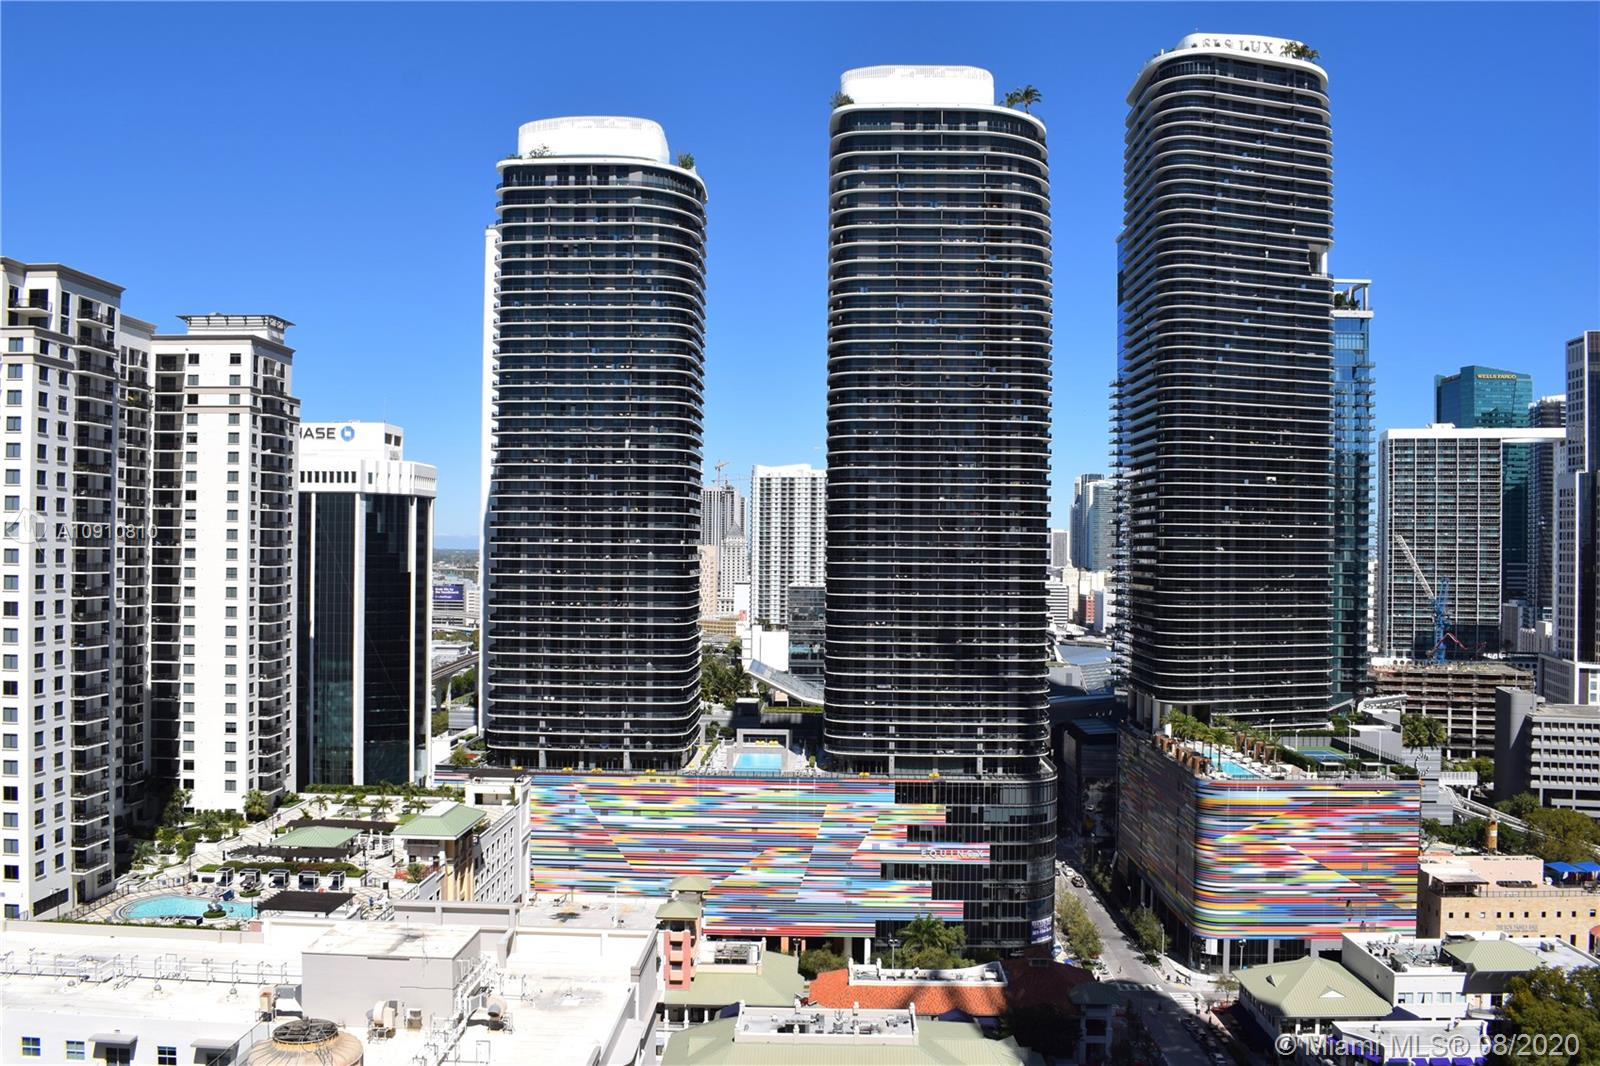 2 bedroom 2 bath unit in brickell at Millecento, created by Carlos Ott and designed by Pinifarina. High rise building in the heart of Mary Brickell village. Upgraded unit, beautiful italian wood porcelain tile in living area and balcony, italian cabinetry, prime appliances. Large balcony, amazing skyline views and bay view. 5 star amenities, rooftop pool at 43rd floor, lounge room, kids room, movie theatre, fitness center, sauna